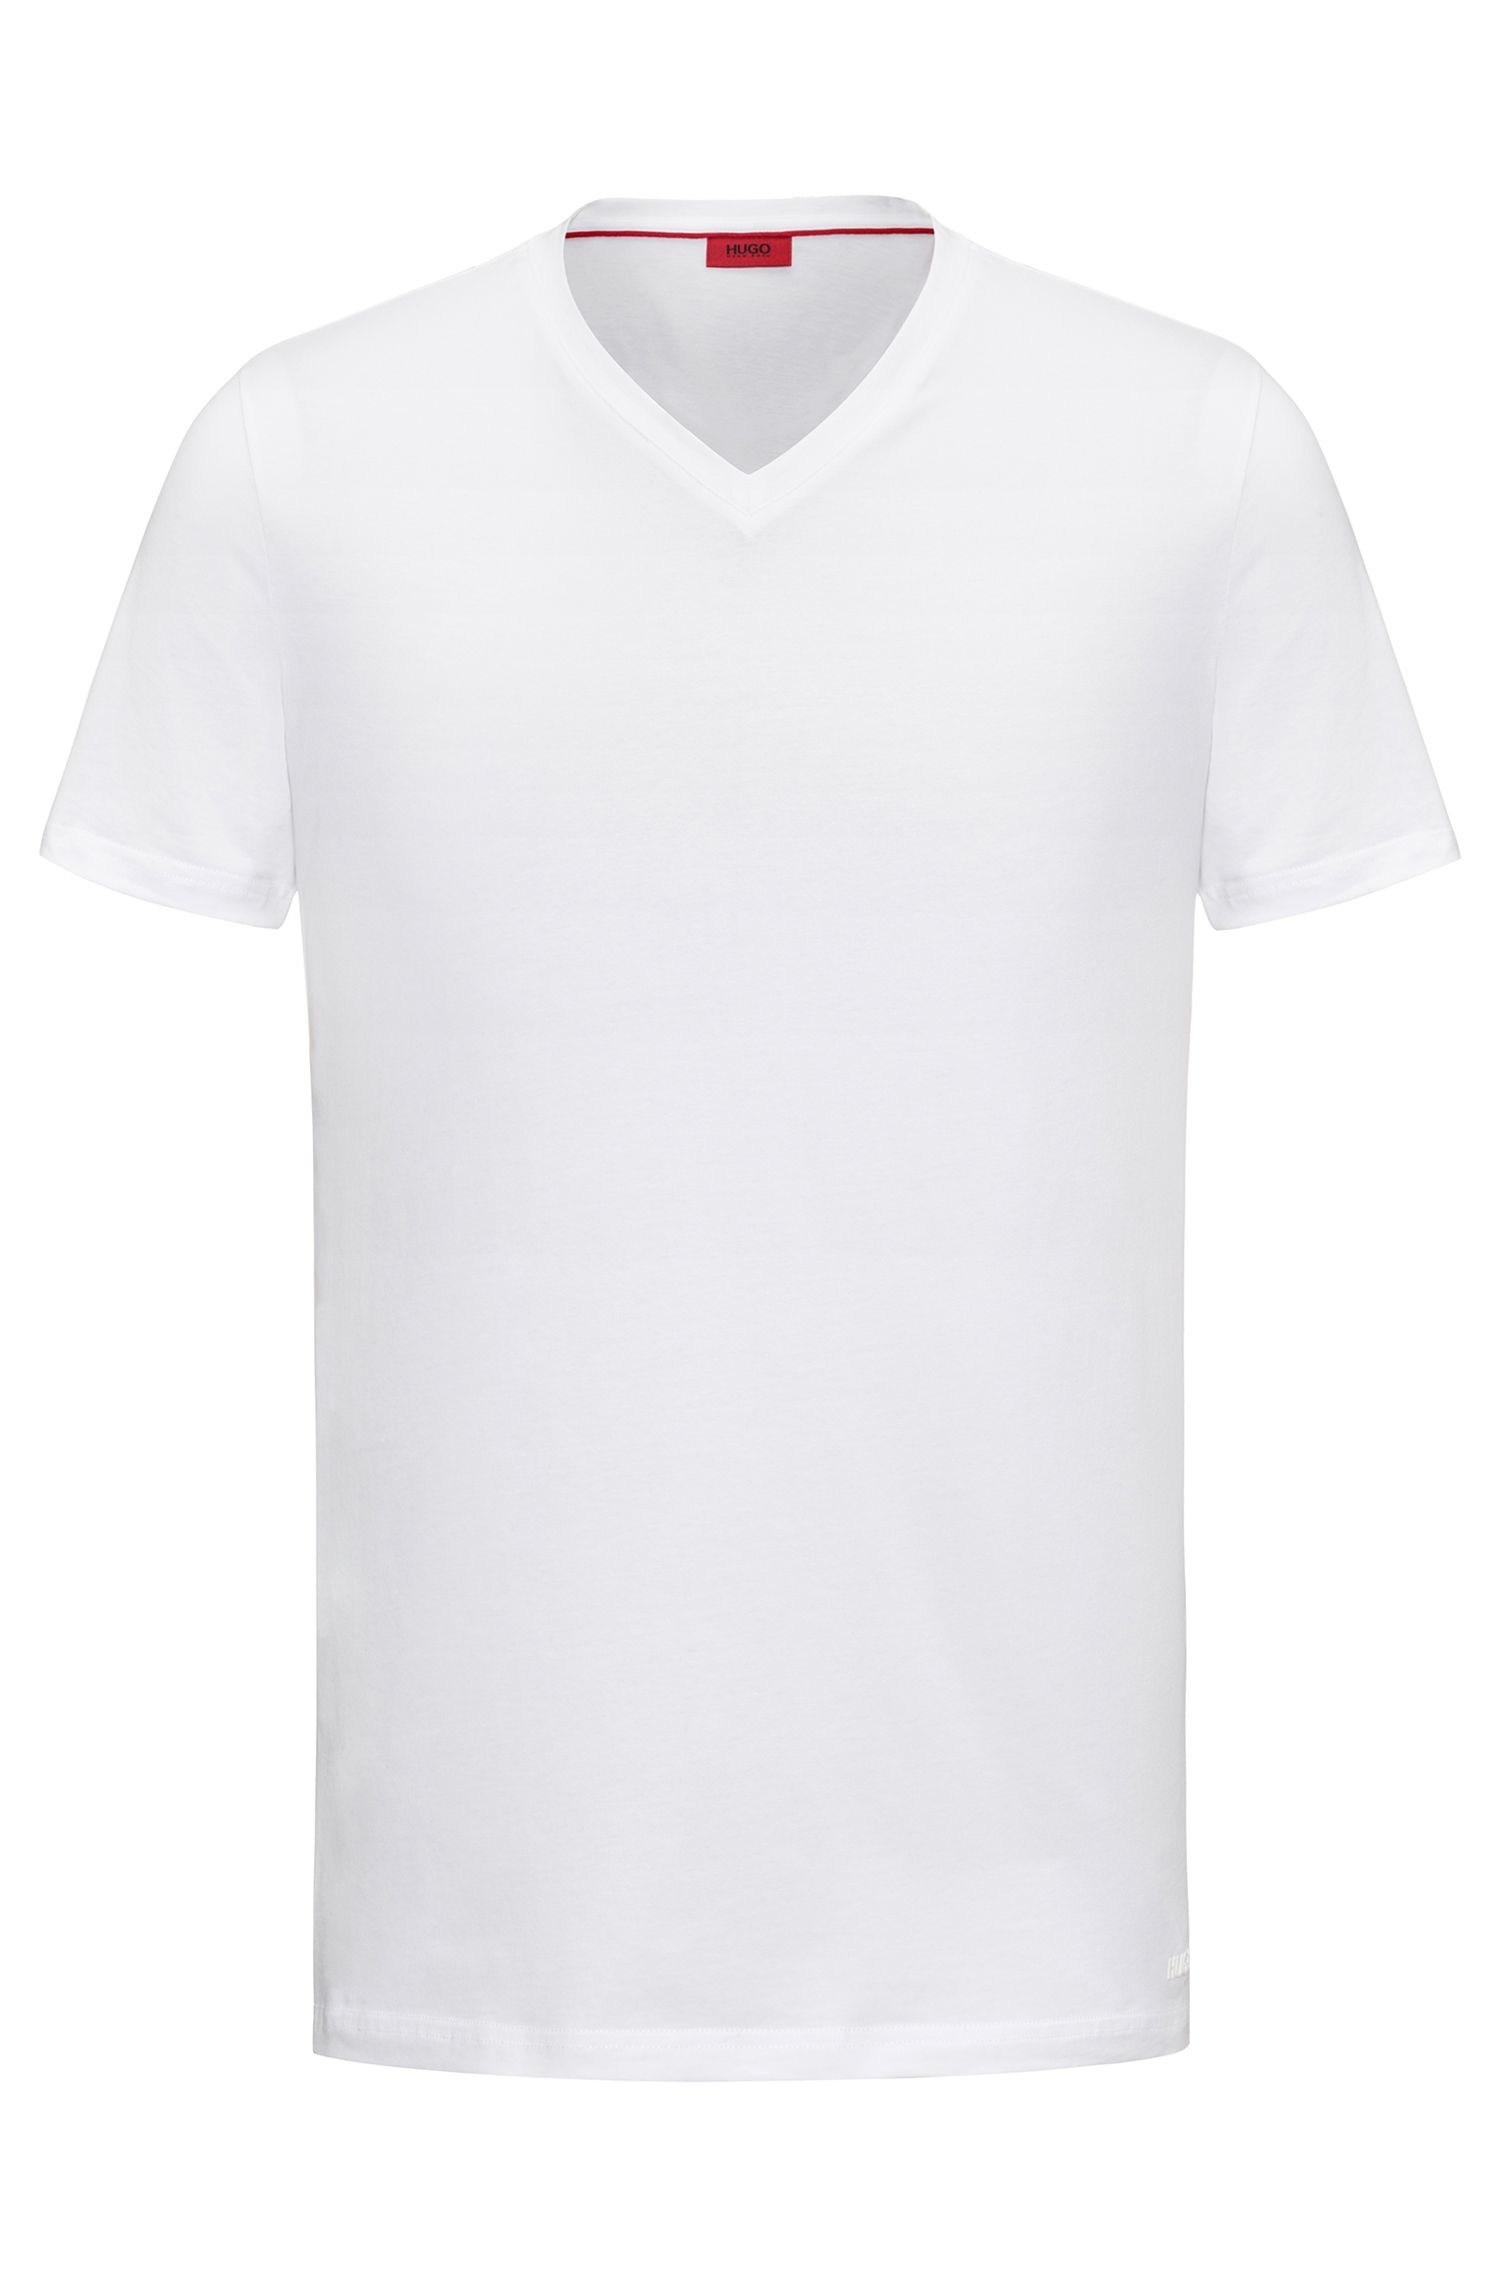 V-neck T-shirt in stretch cotton jersey, White